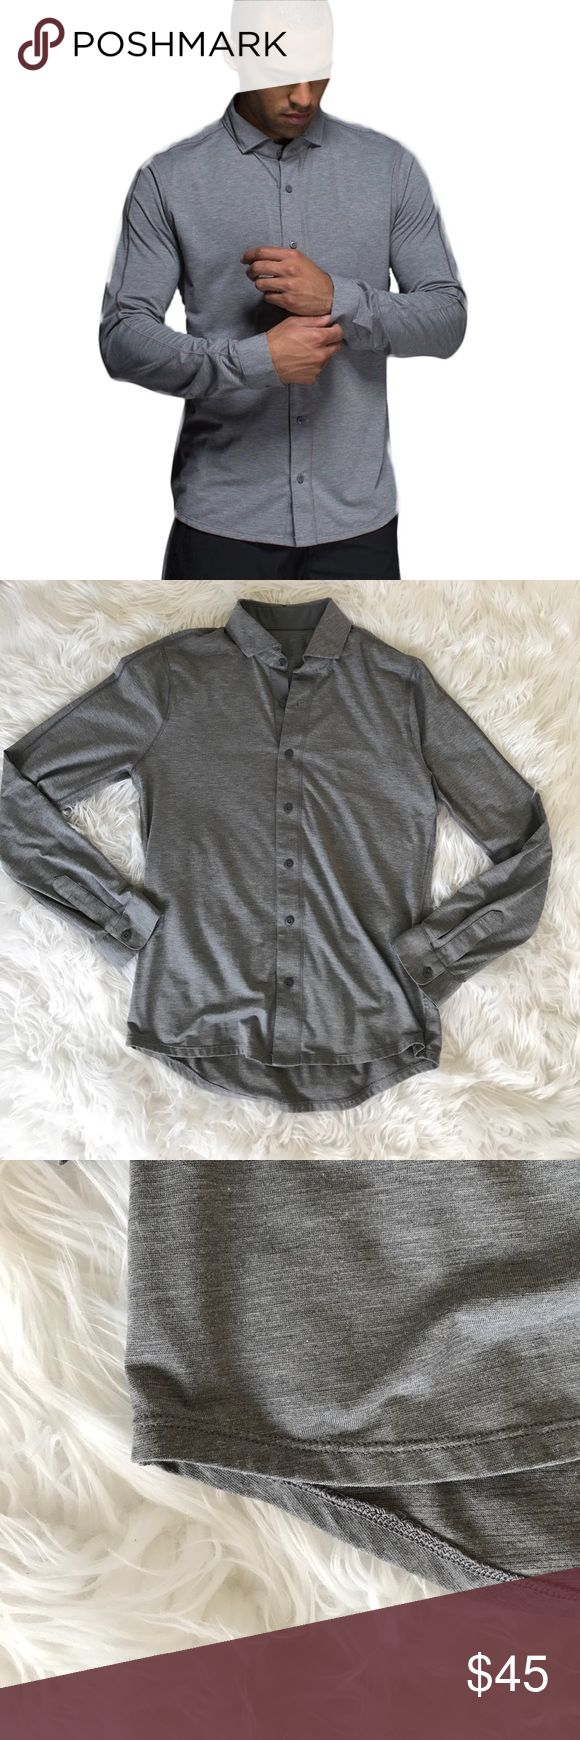 """• Lululemon • Men's Rival Button Down Gray - Lululemon - Men's - Rival Button Down Shirt - Gray - No Size Tag - Chest 19"""" - Length 26"""" - Either a small or medium - Excellent Condition lululemon athletica Shirts Casual Button Down Shirts"""